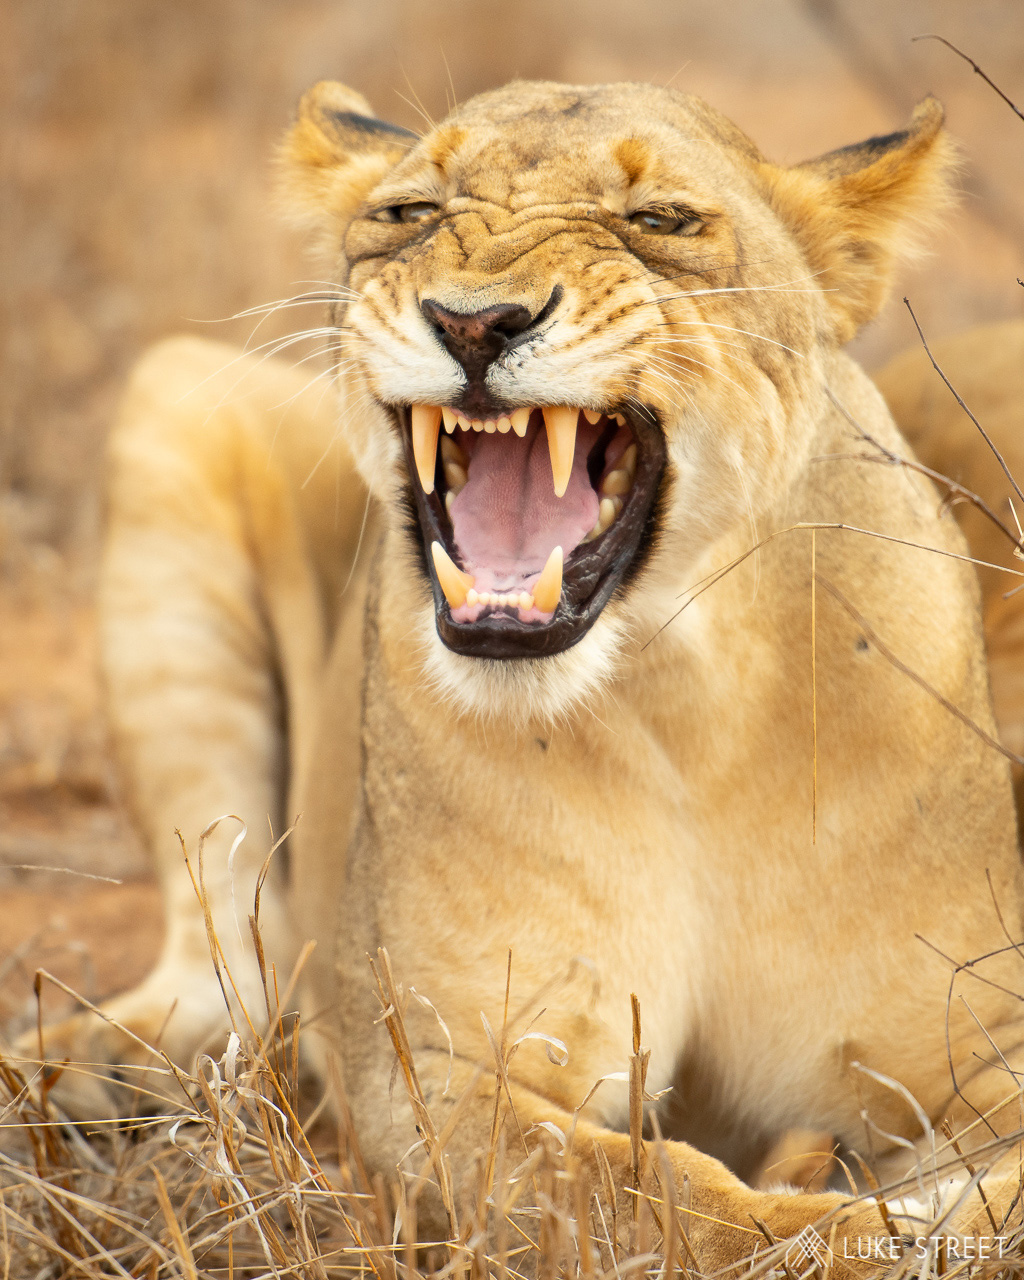 Tanda Tula - River Pride snarl in the Greater Kruger, South Africa